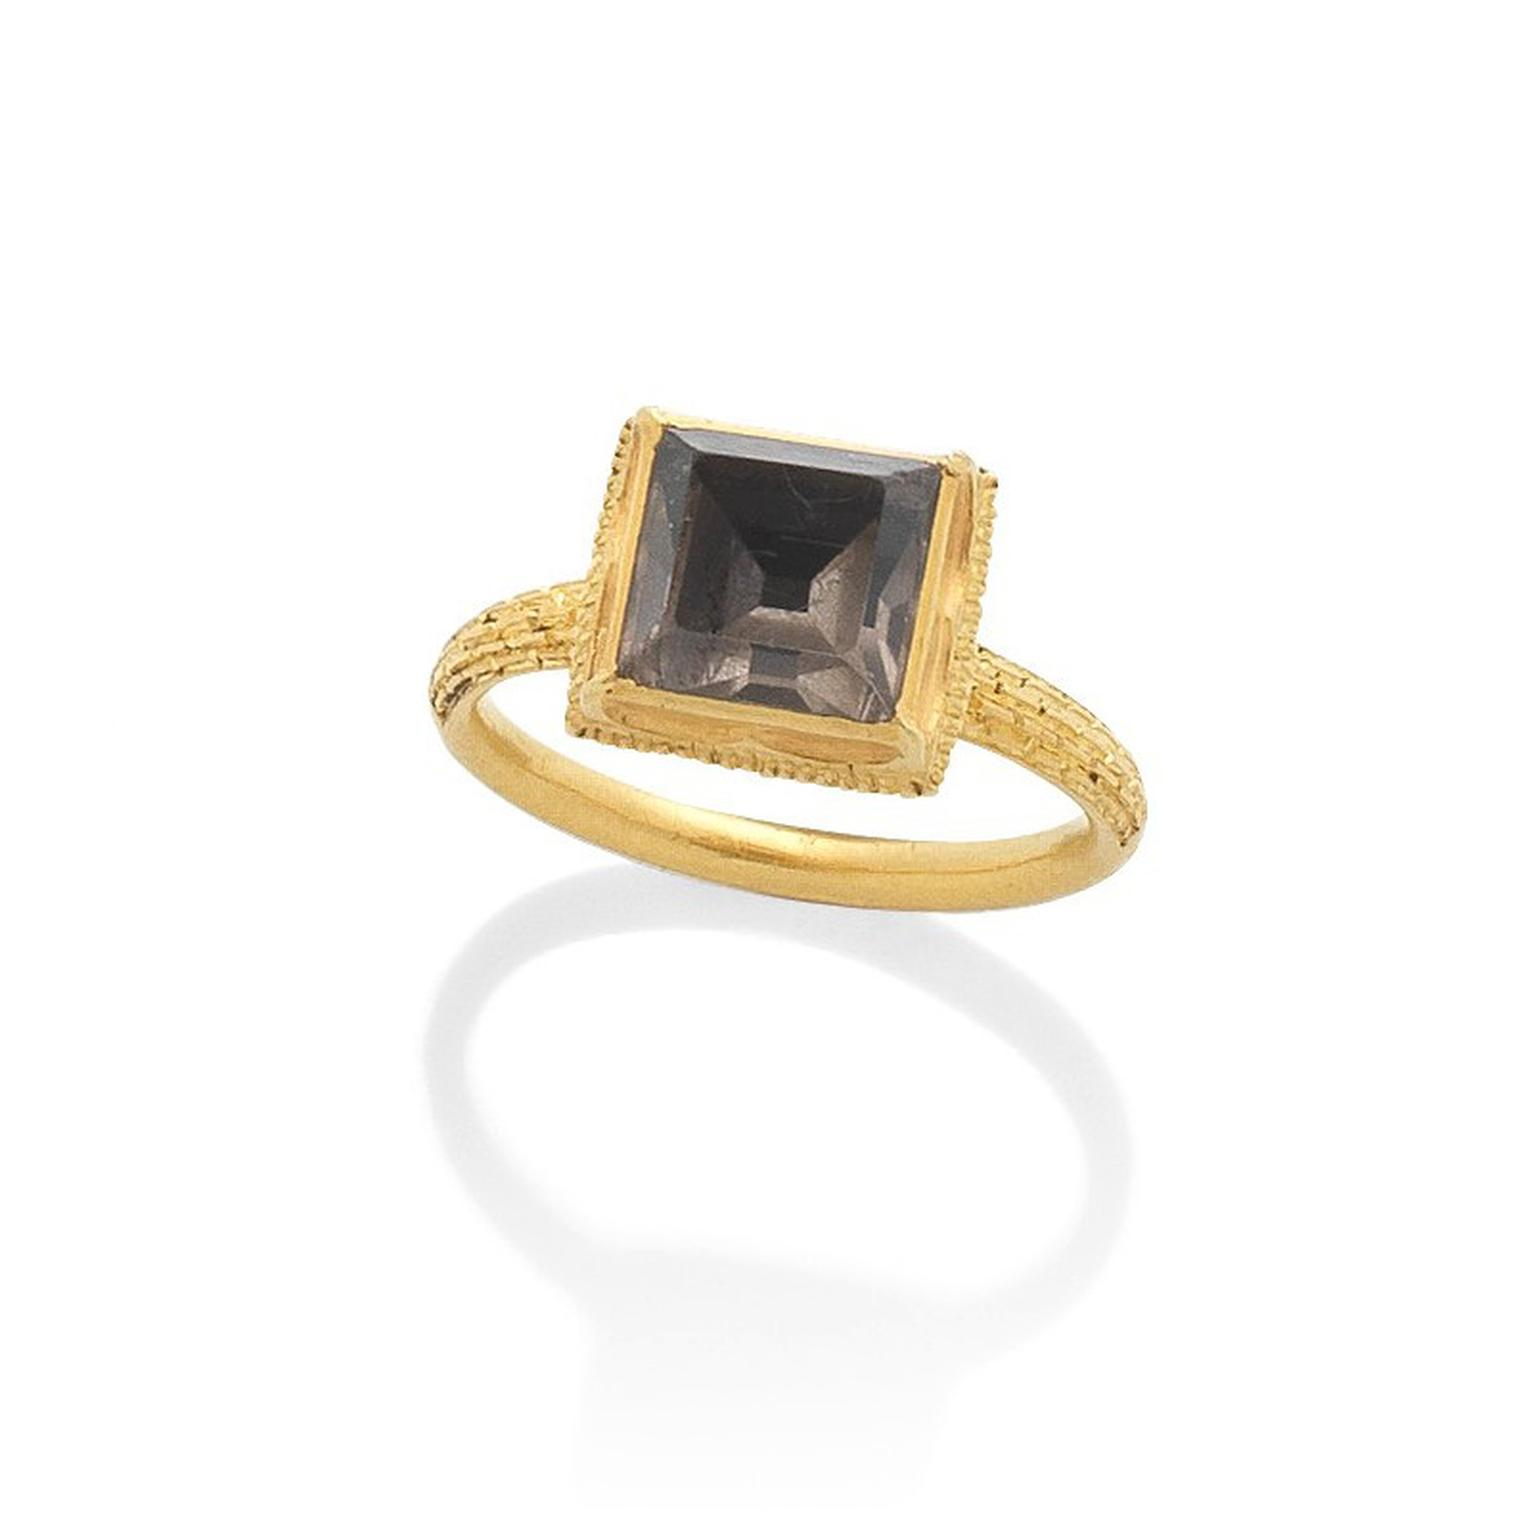 Late 17th century gold and quartz ring auctionned by Bonhams Lot 18